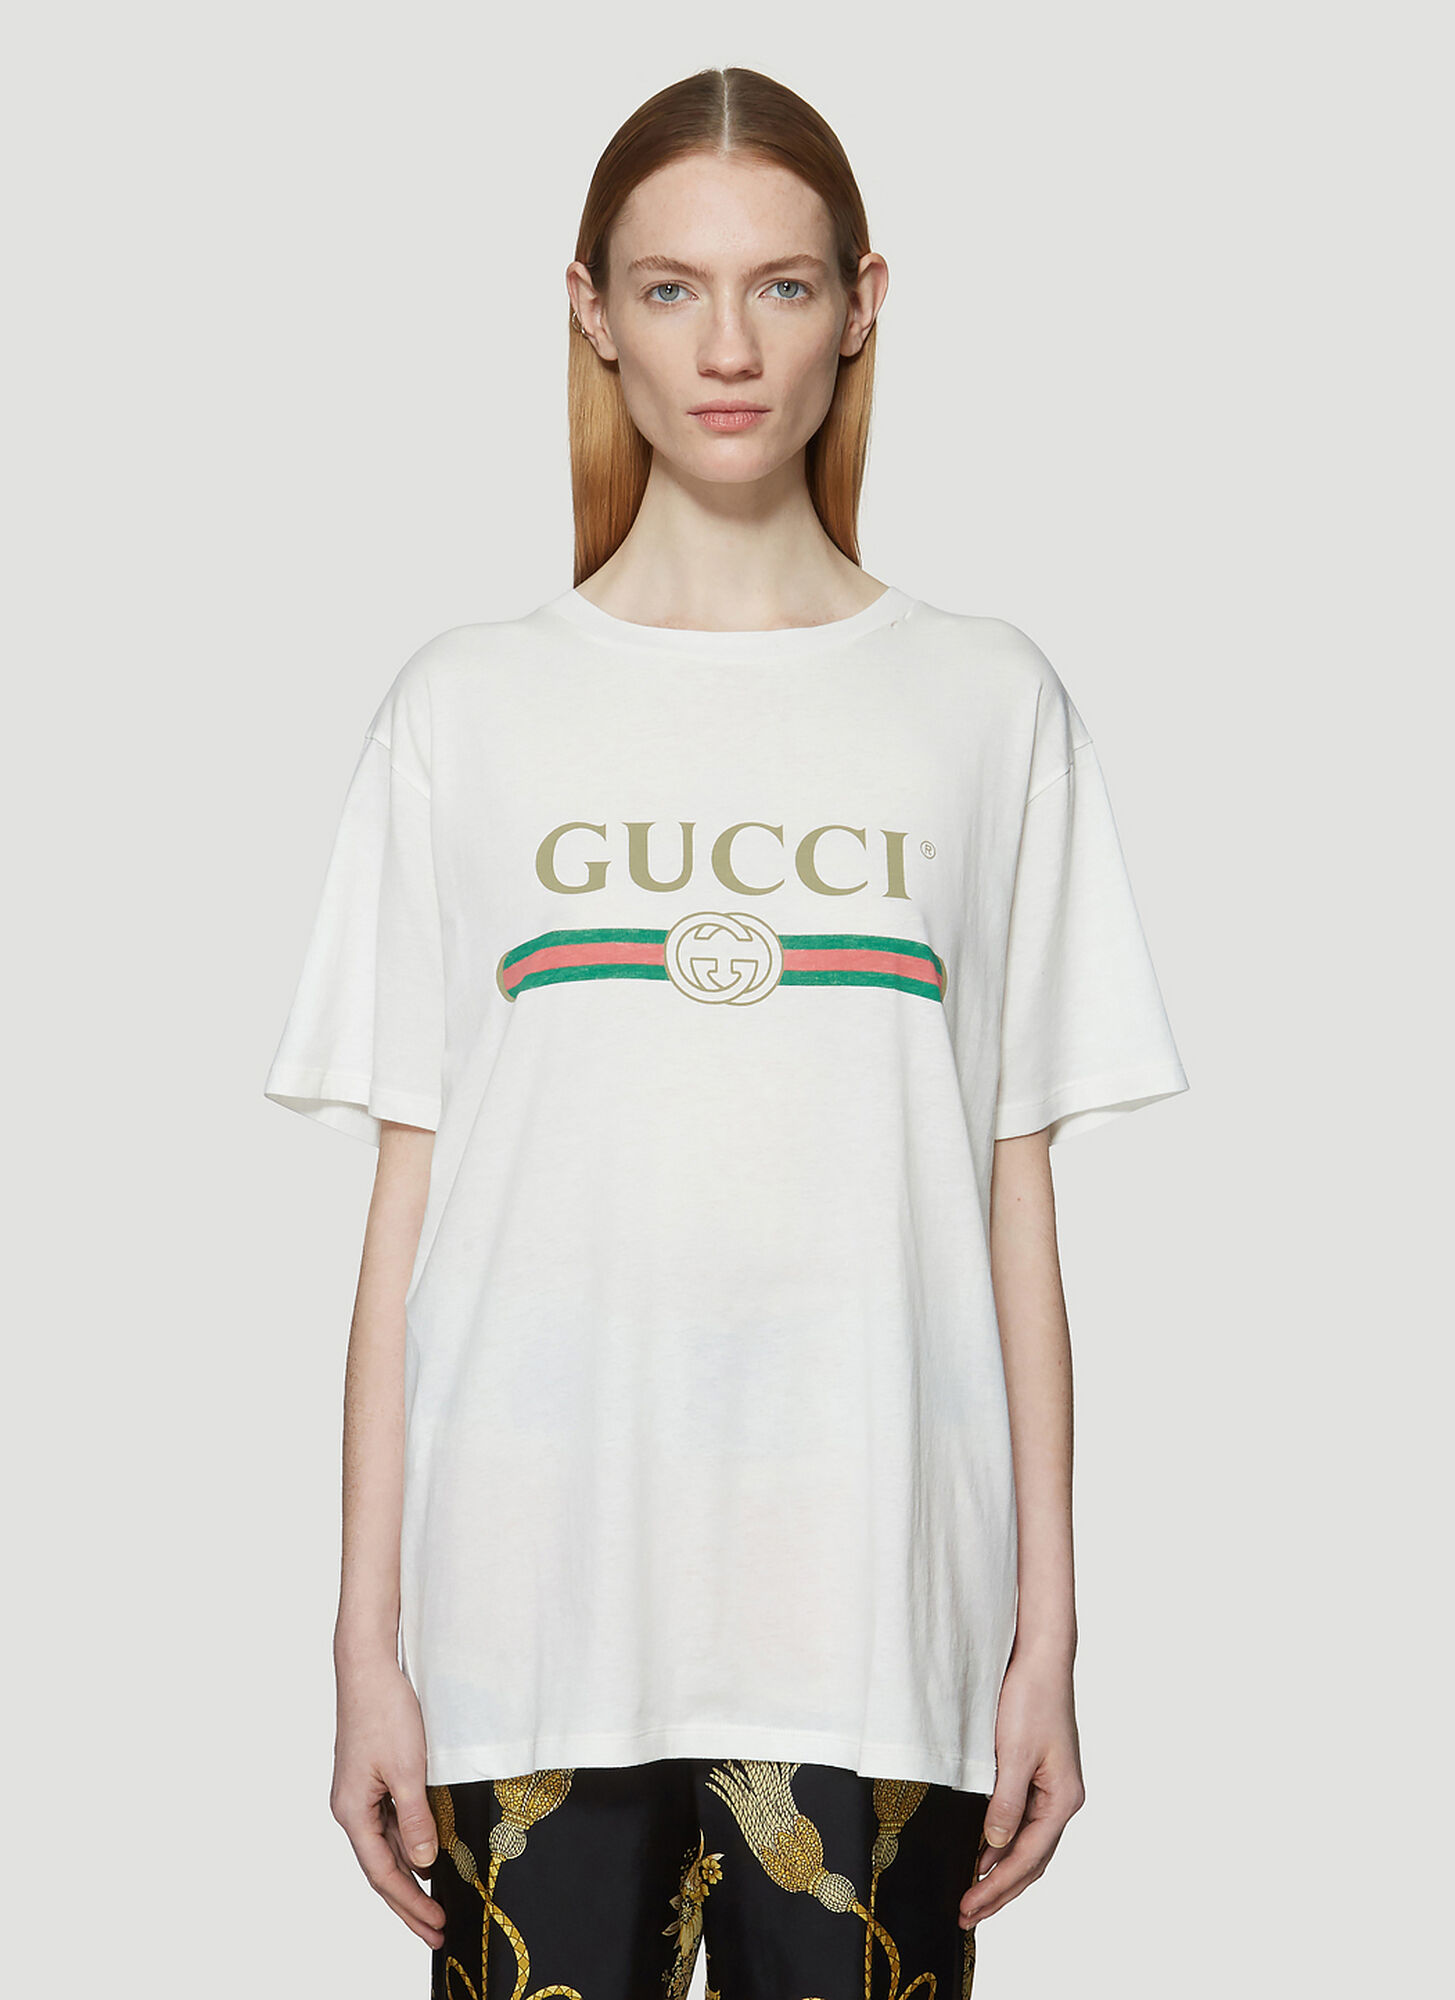 Gucci Gucci Logo Print Faded Cotton T-Shirt in White